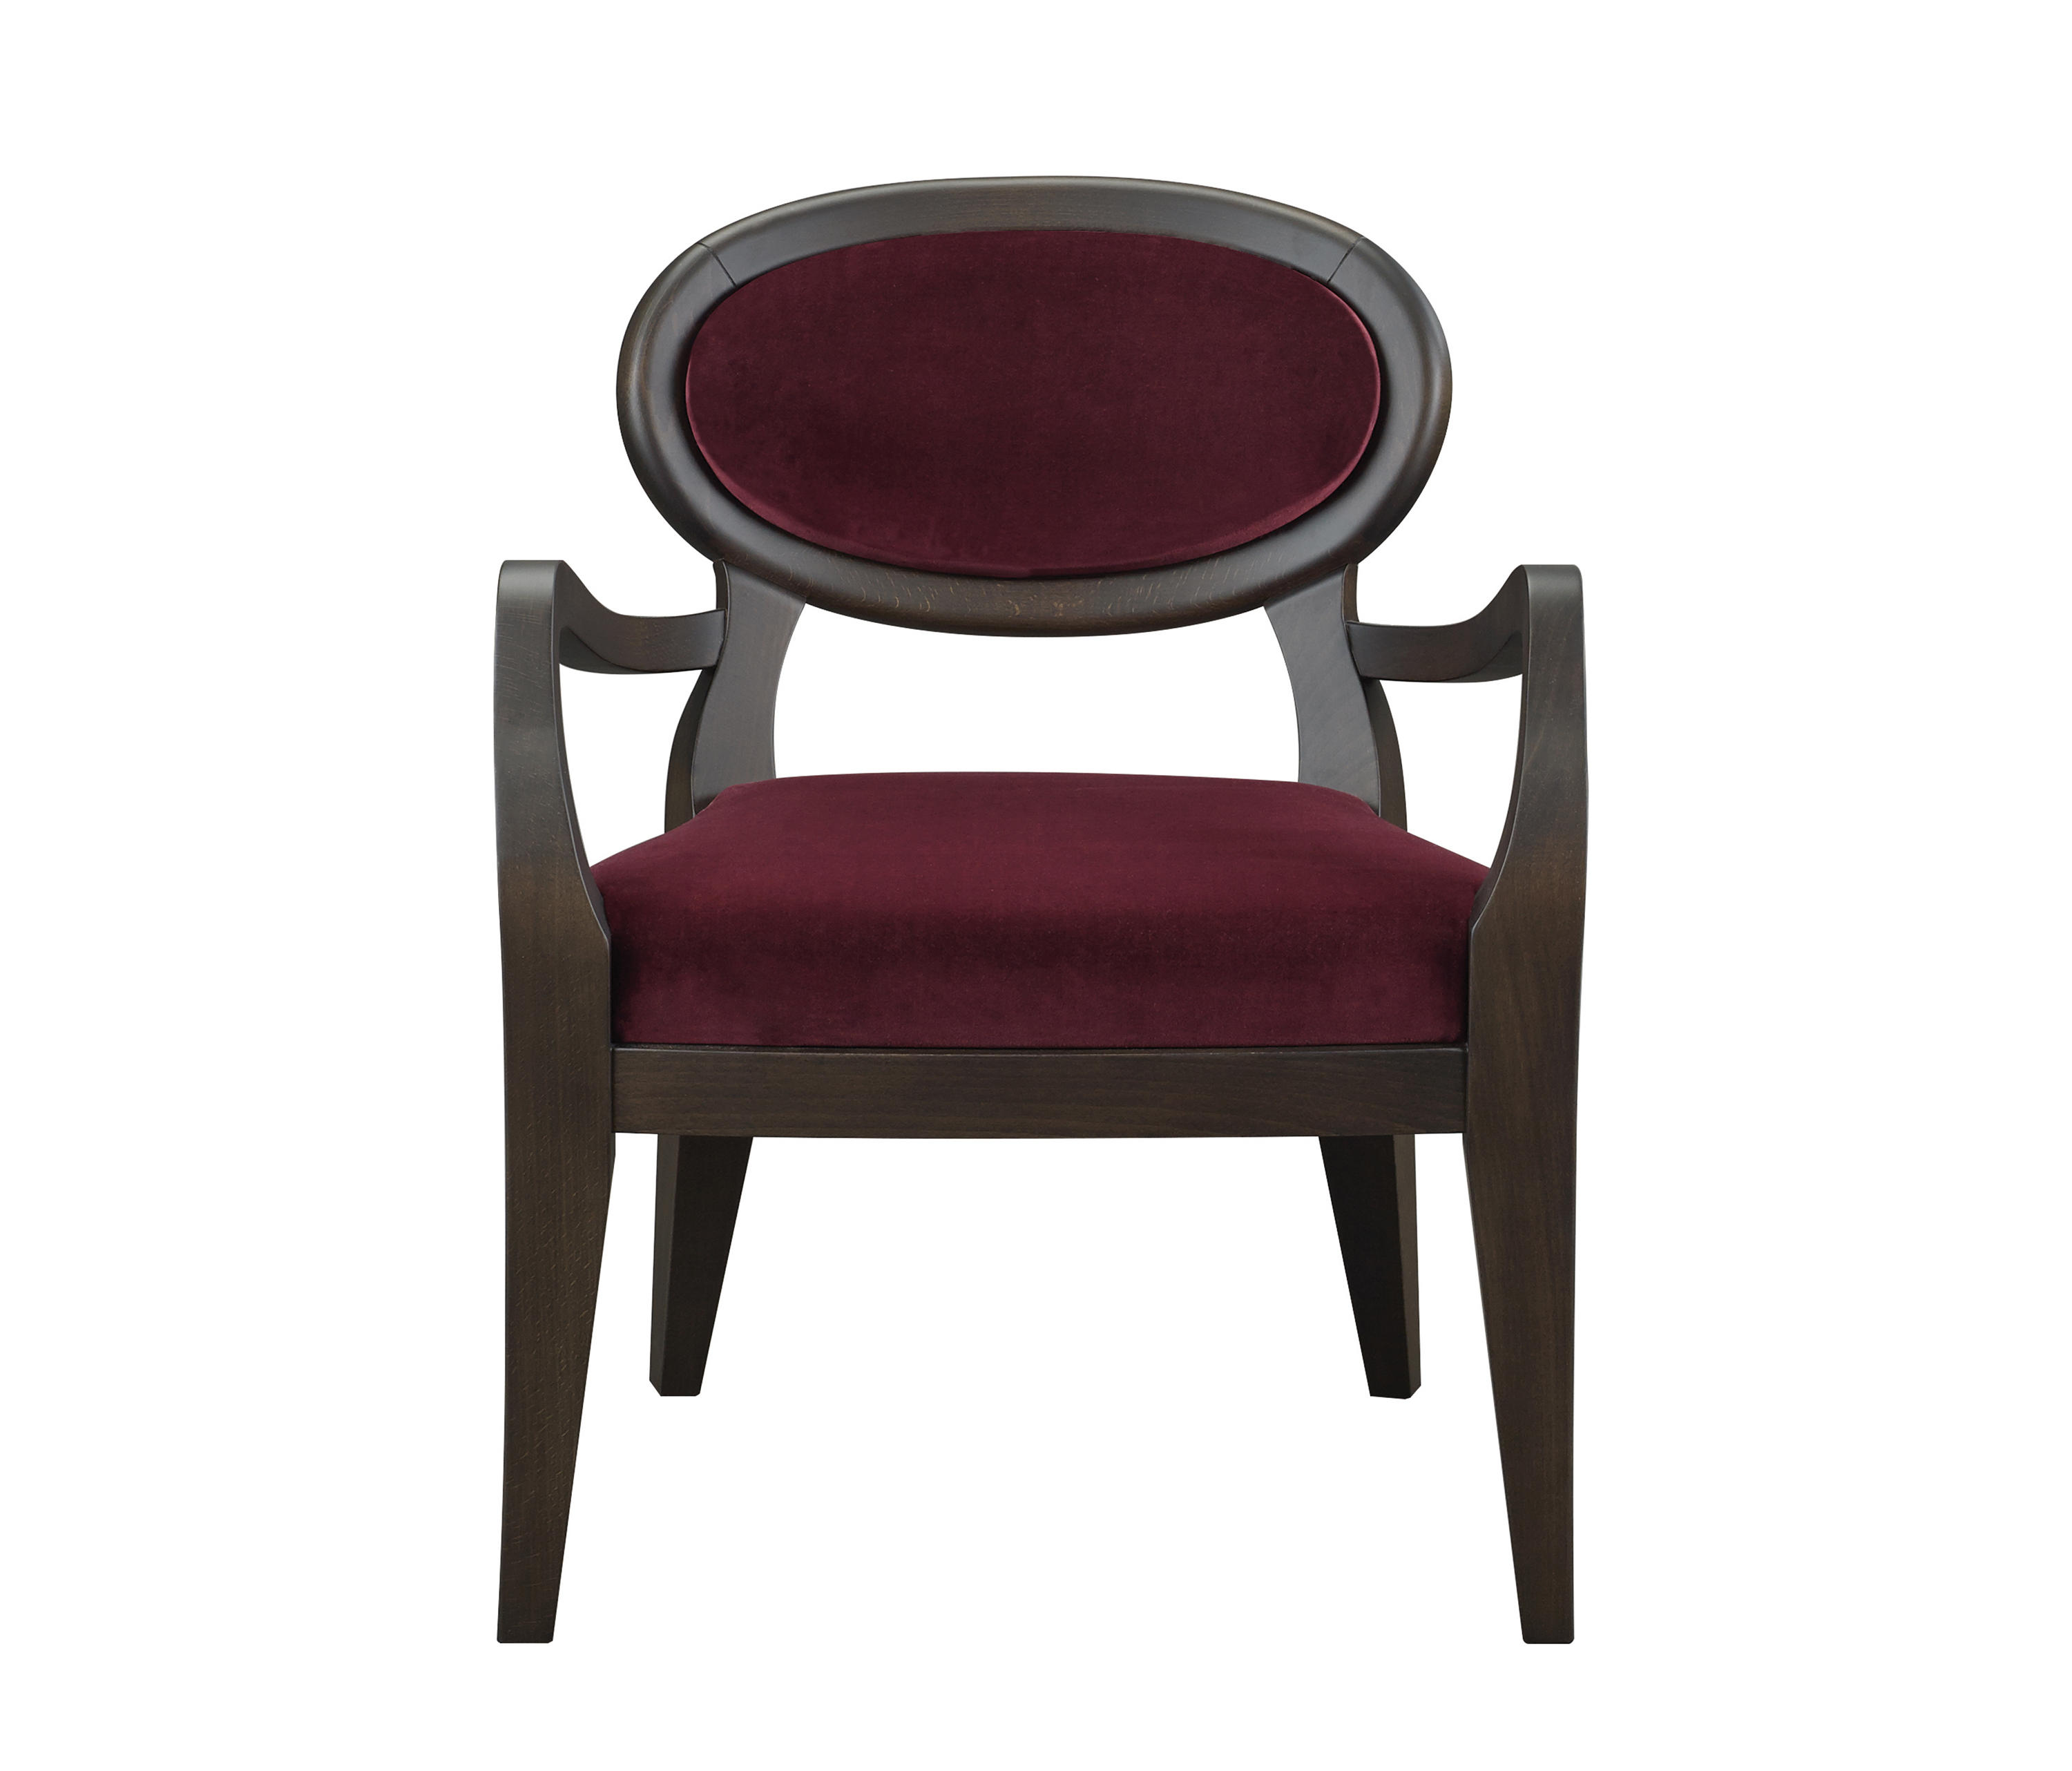 Amina Chair With Arms By Promemoria | Chairs